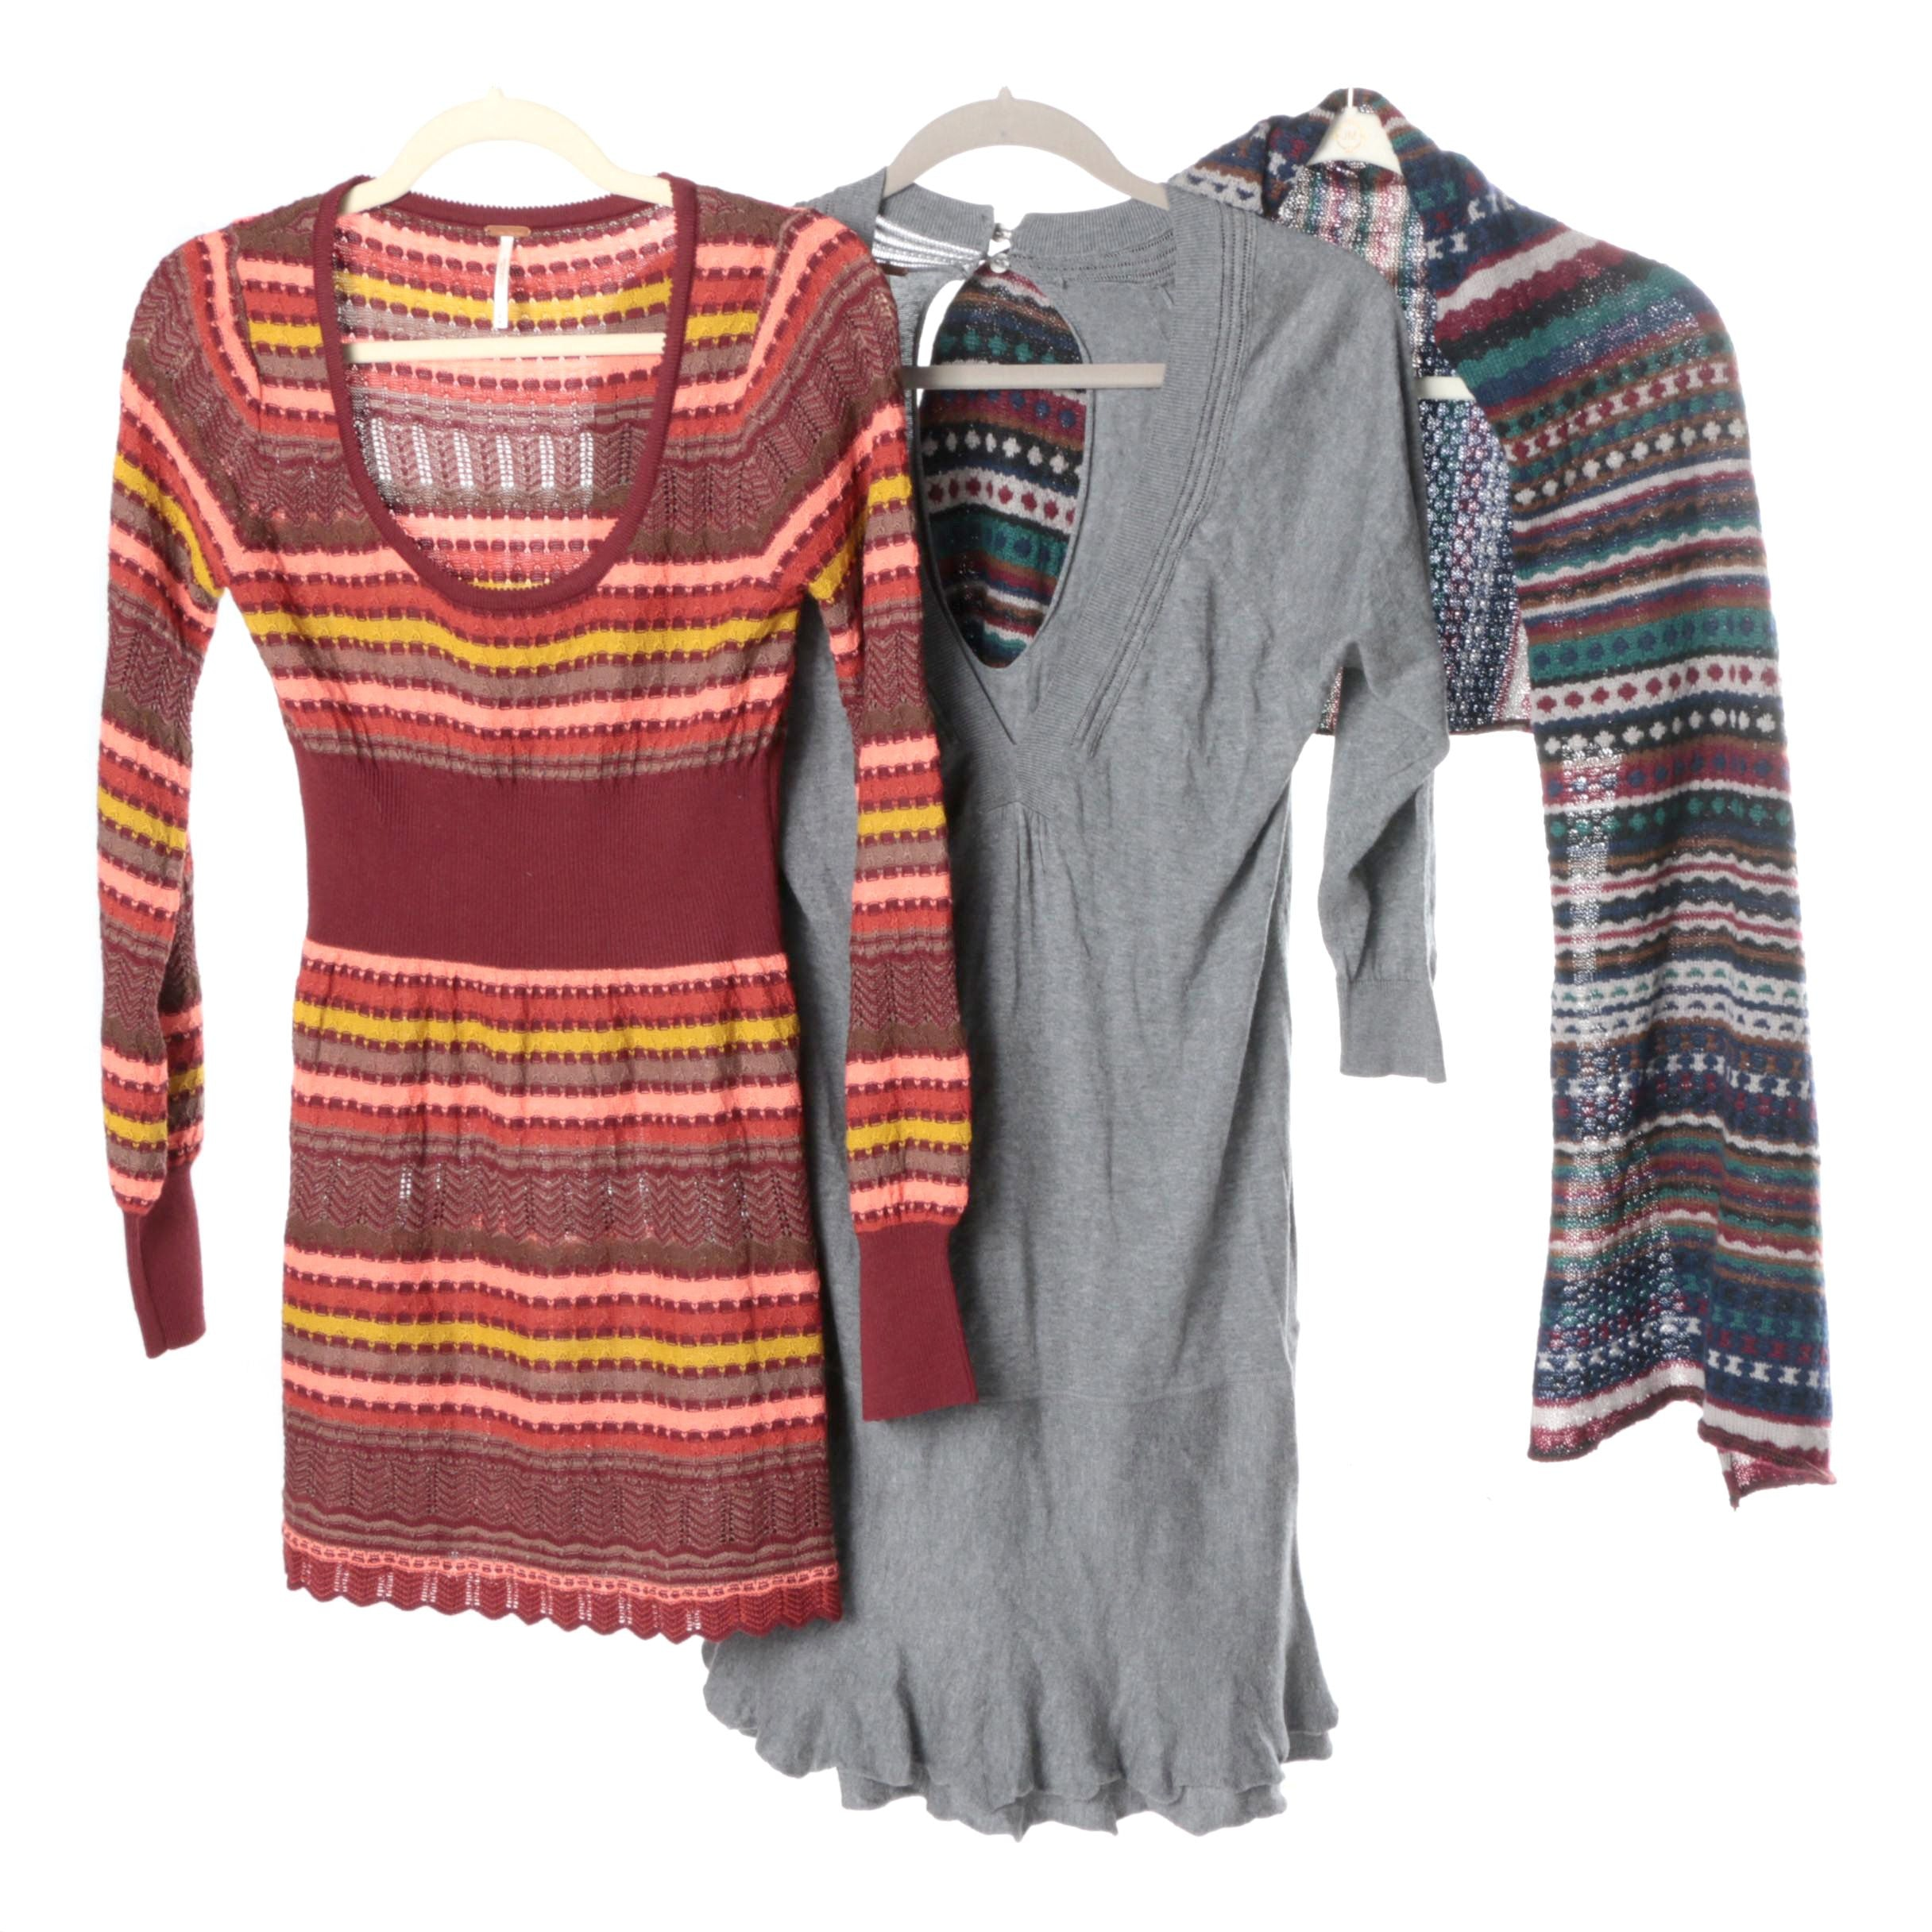 Women's Knit Dresses and Missoni Scarf